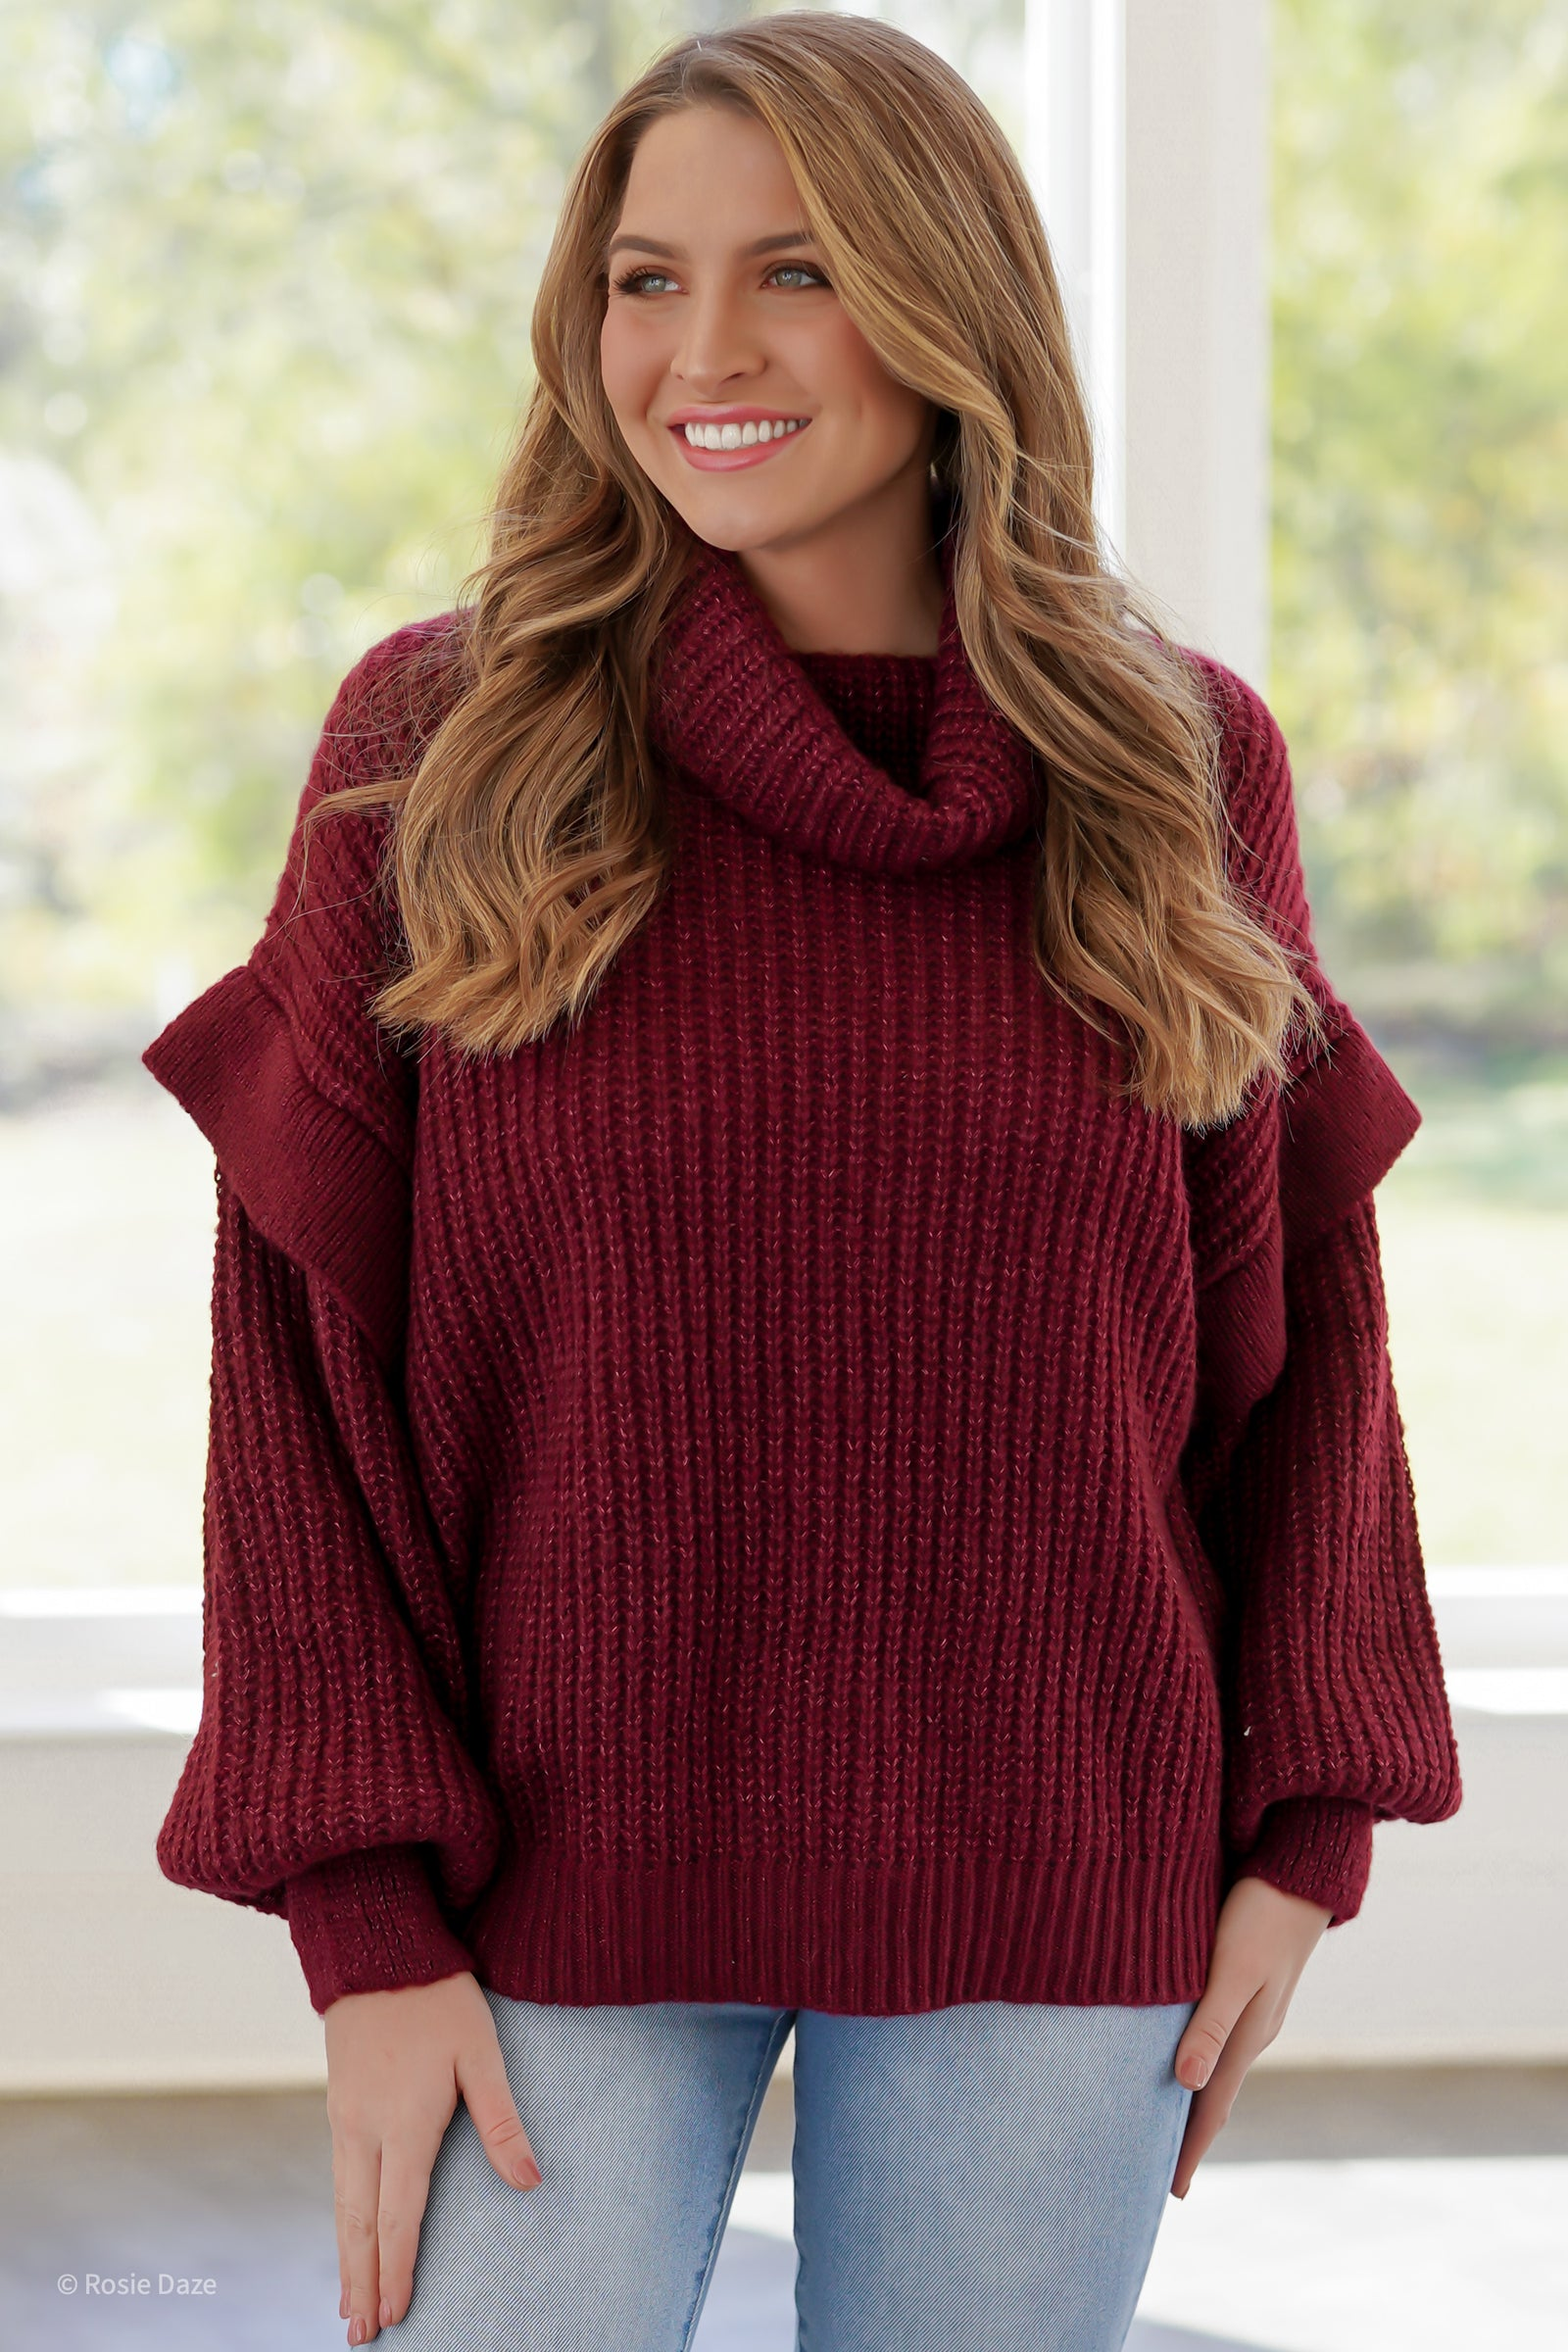 Zinfandel Sweater